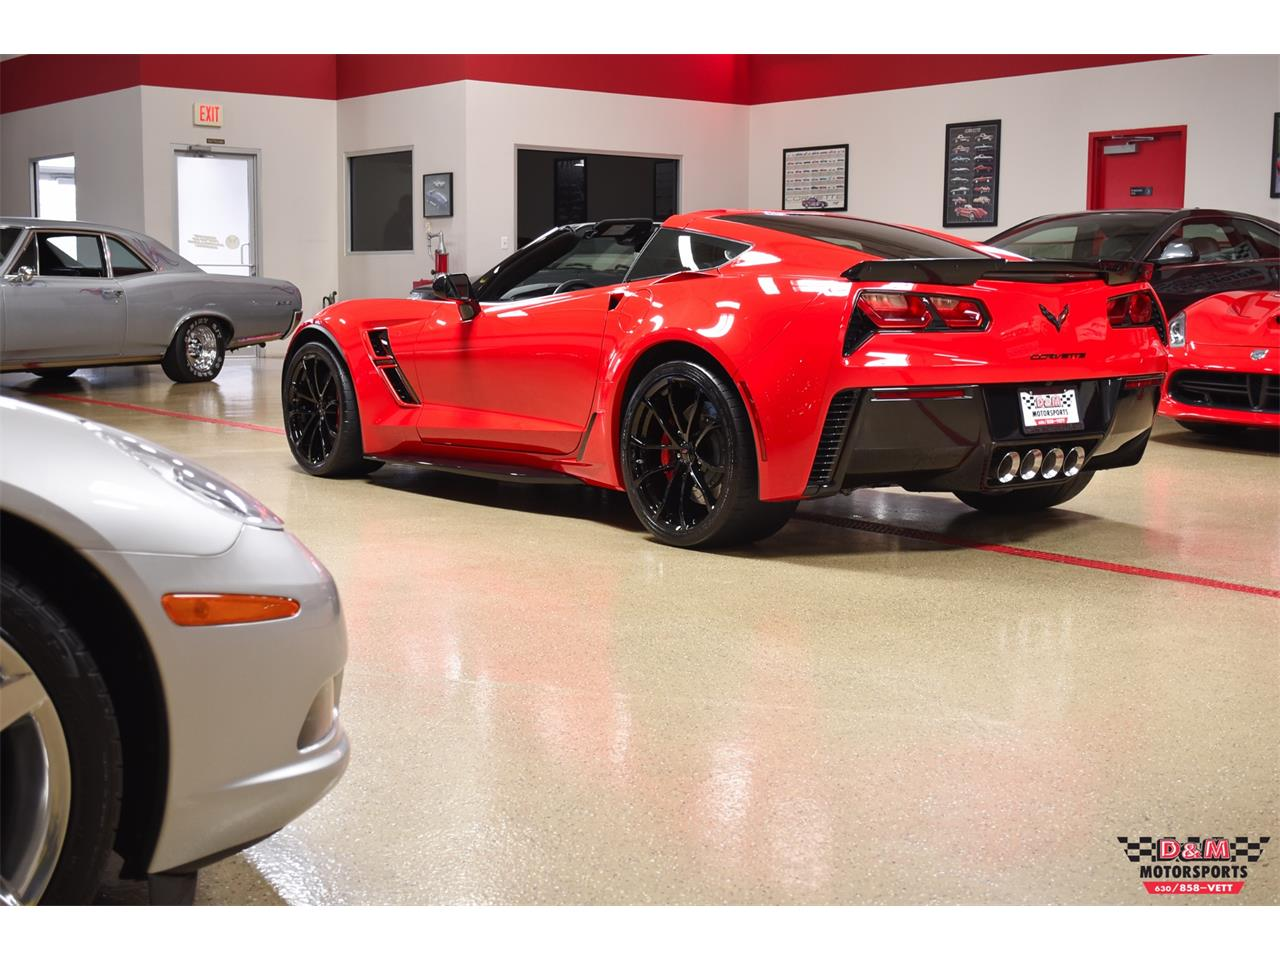 Large Picture of '18 Chevrolet Corvette located in Illinois Offered by D & M Motorsports - PWM3